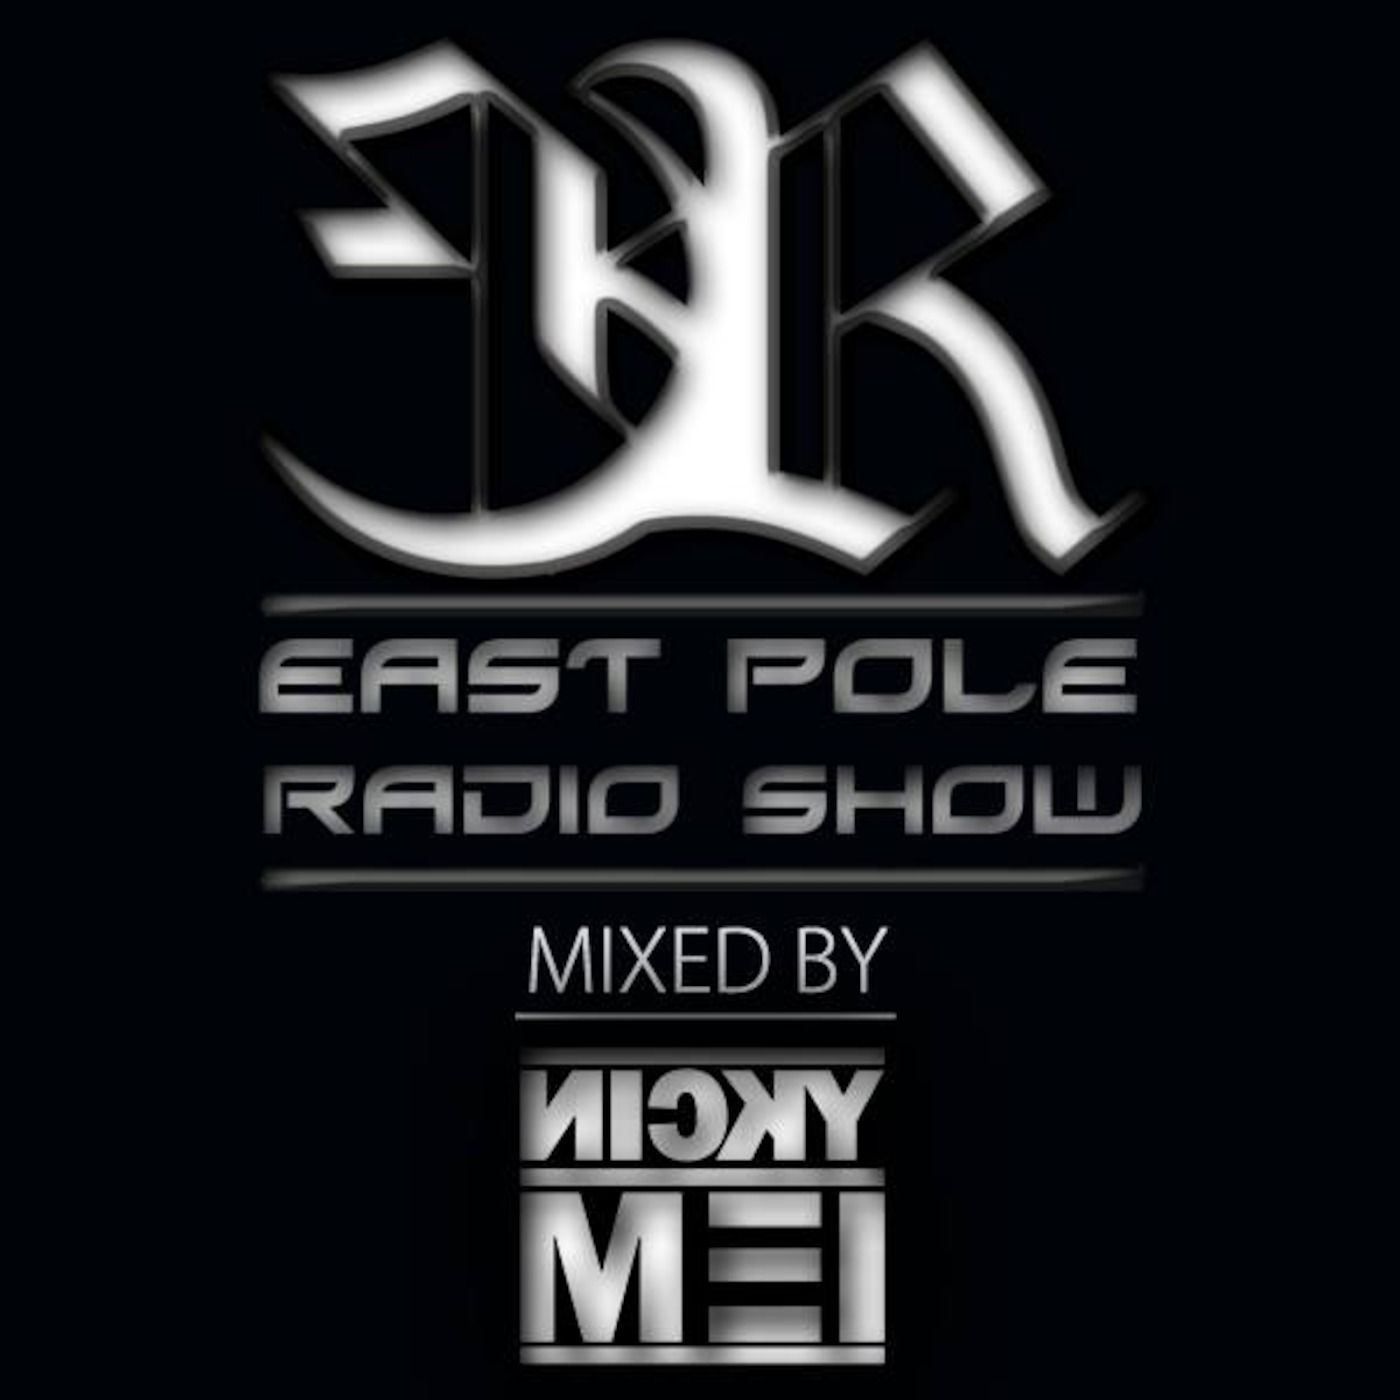 East Pole Radio Show's Podcast